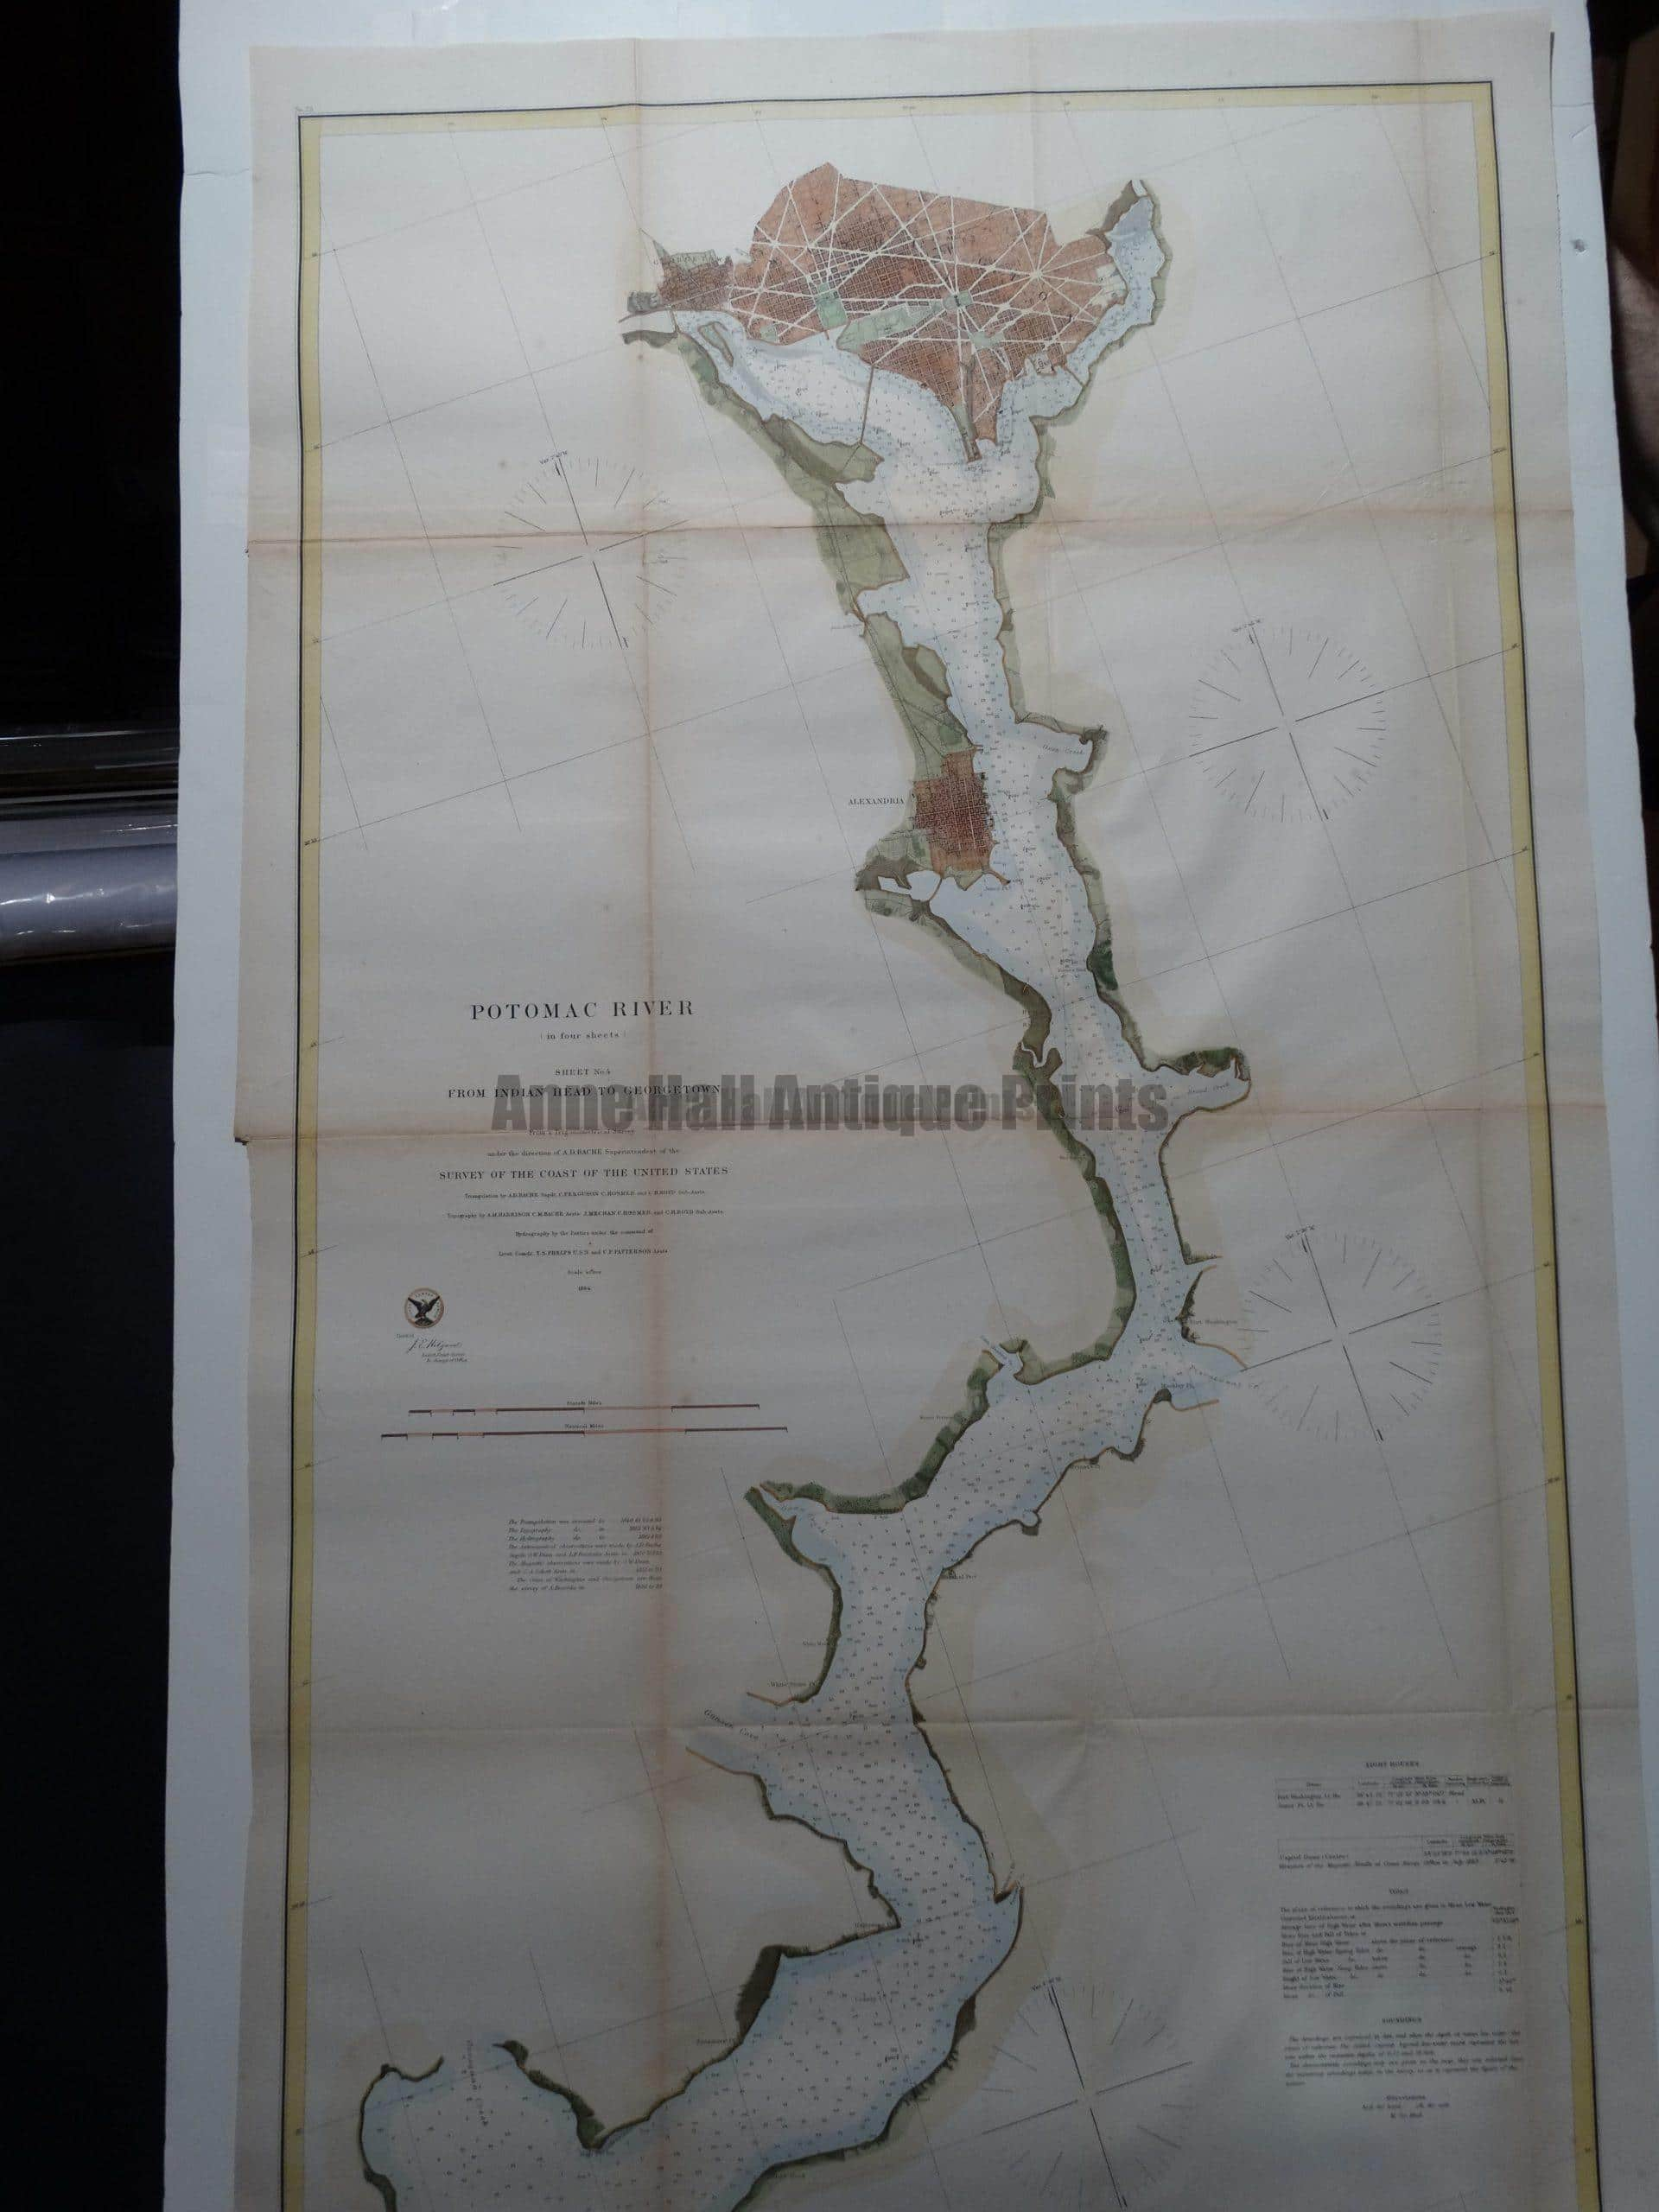 """1864 USCS Chart Potomac River.  A superbly hand colored steel plate engraving published by the Unites States Coastal Survey in 1864.  Superb condition and fabulous hand coloring.  25"""" x 41.5""""  $975."""